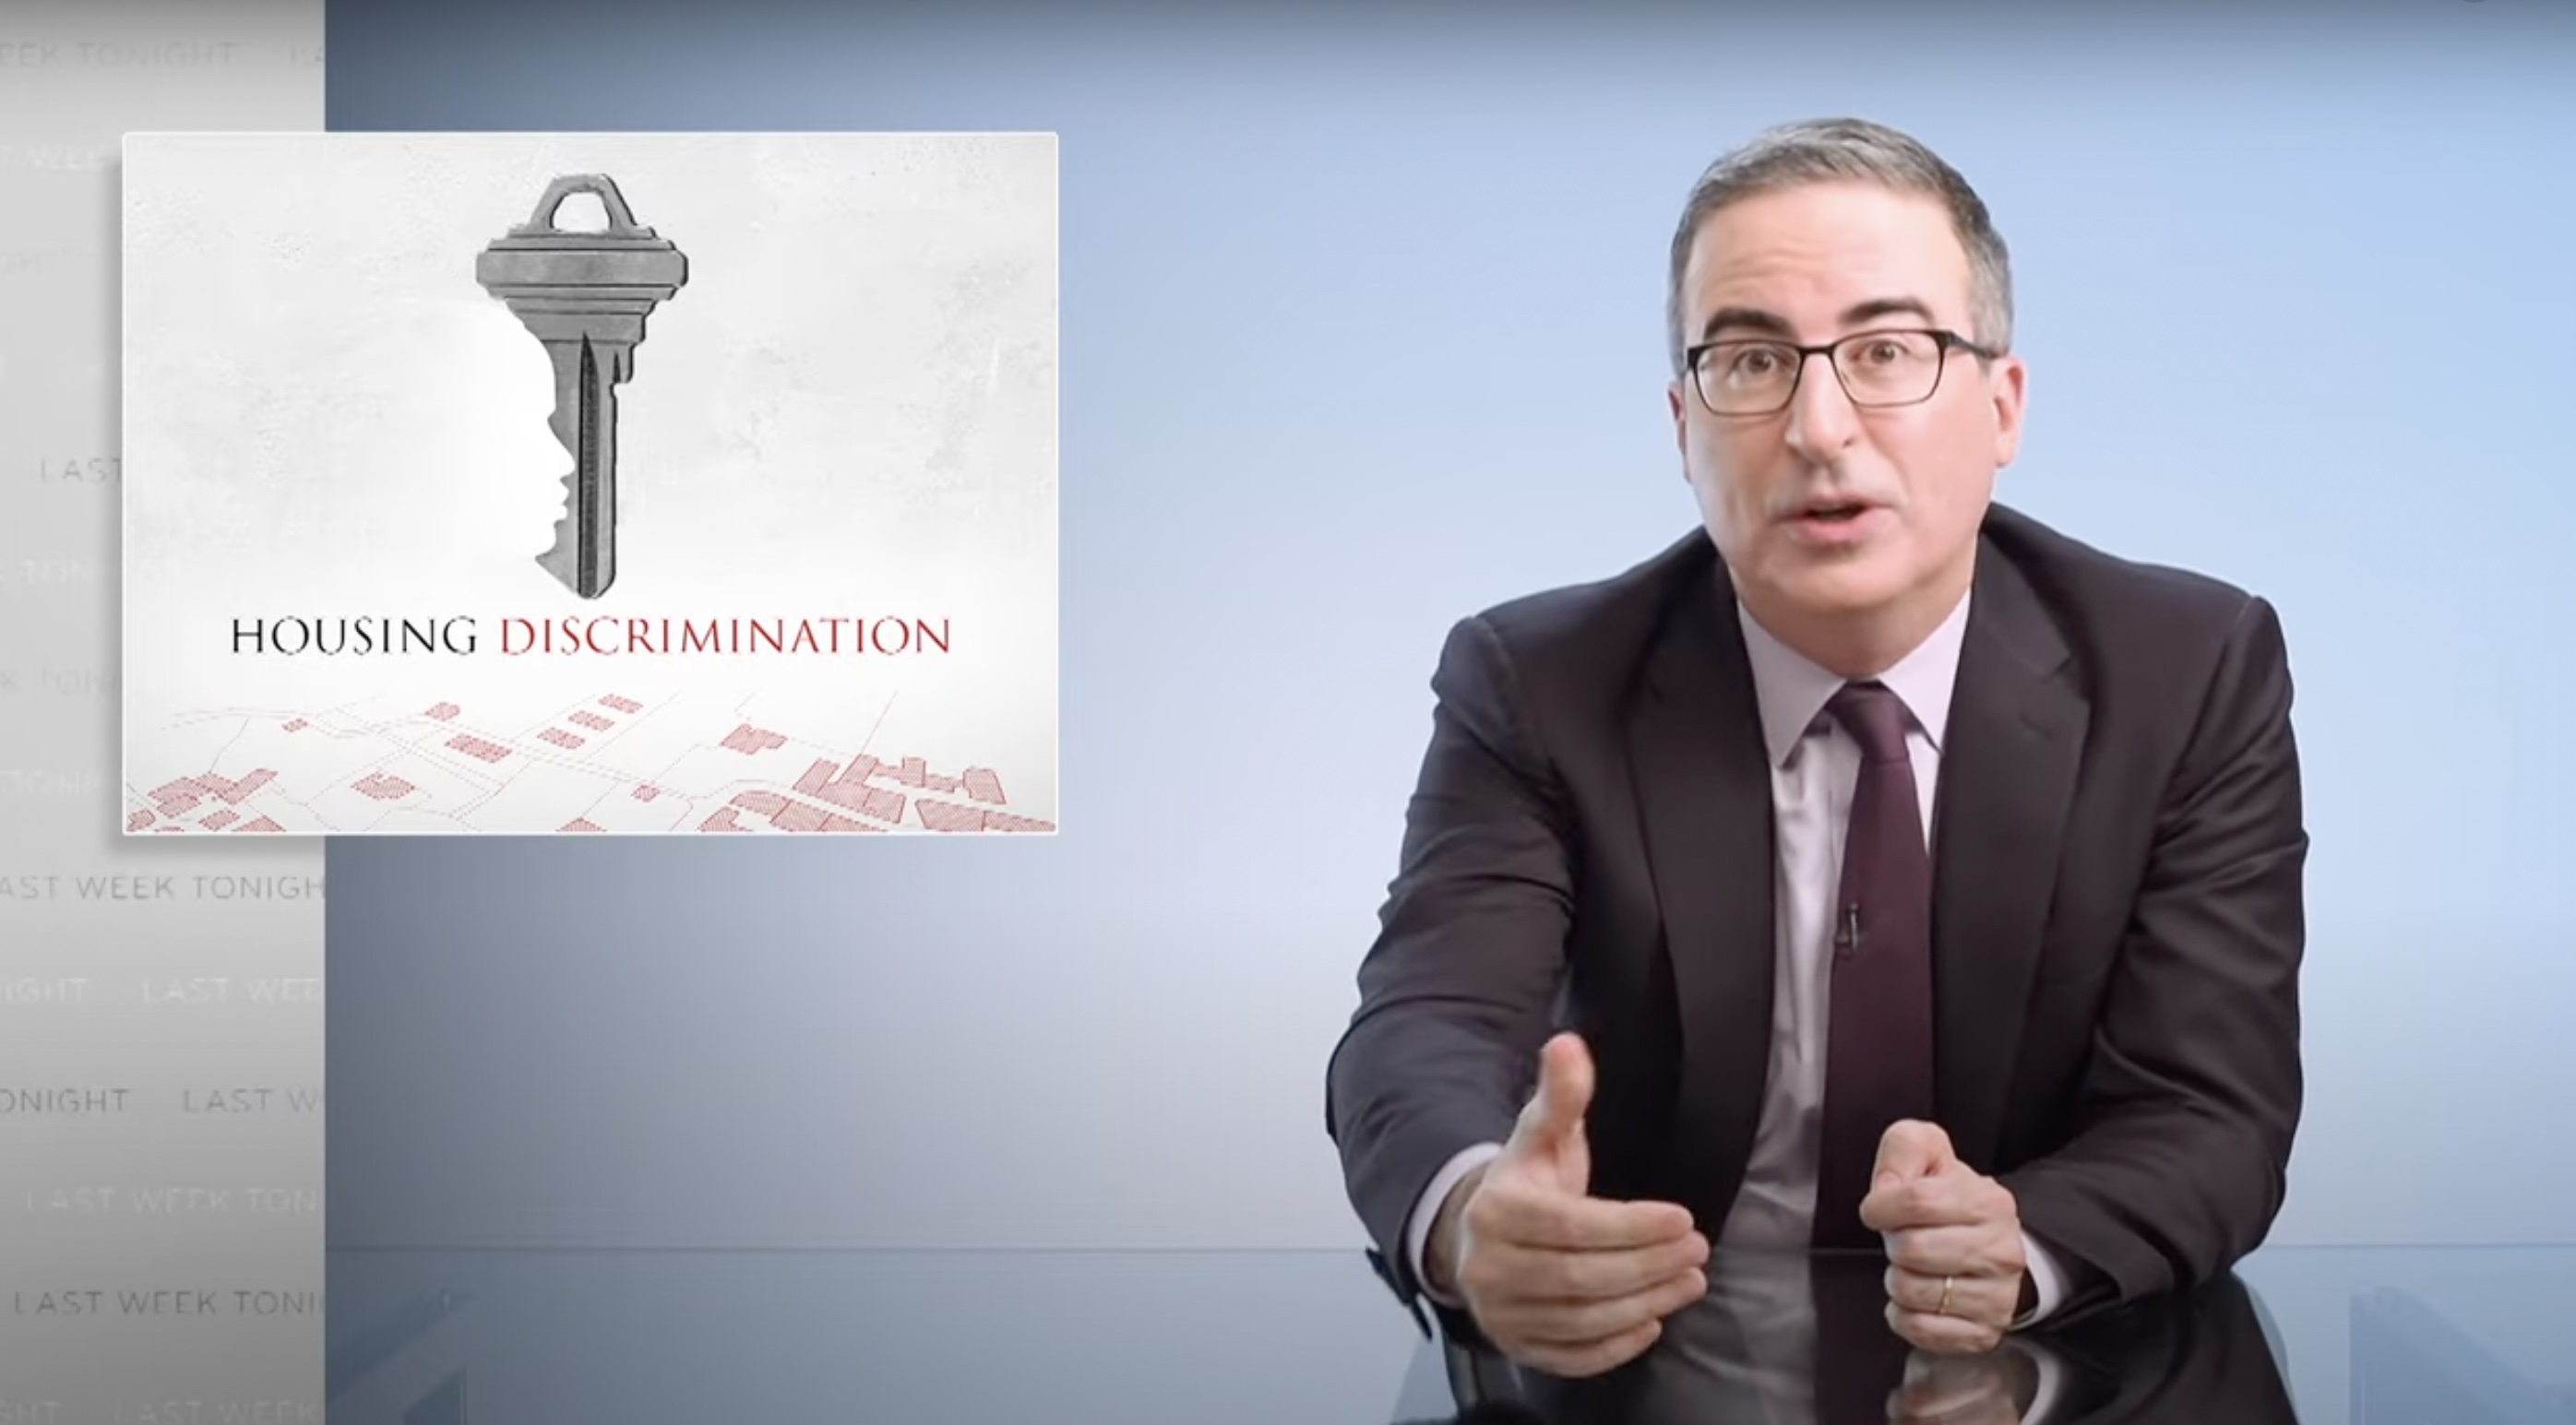 Youtube video of Jon Oliver from Last Week Tonight Talking about Housing Discrimination